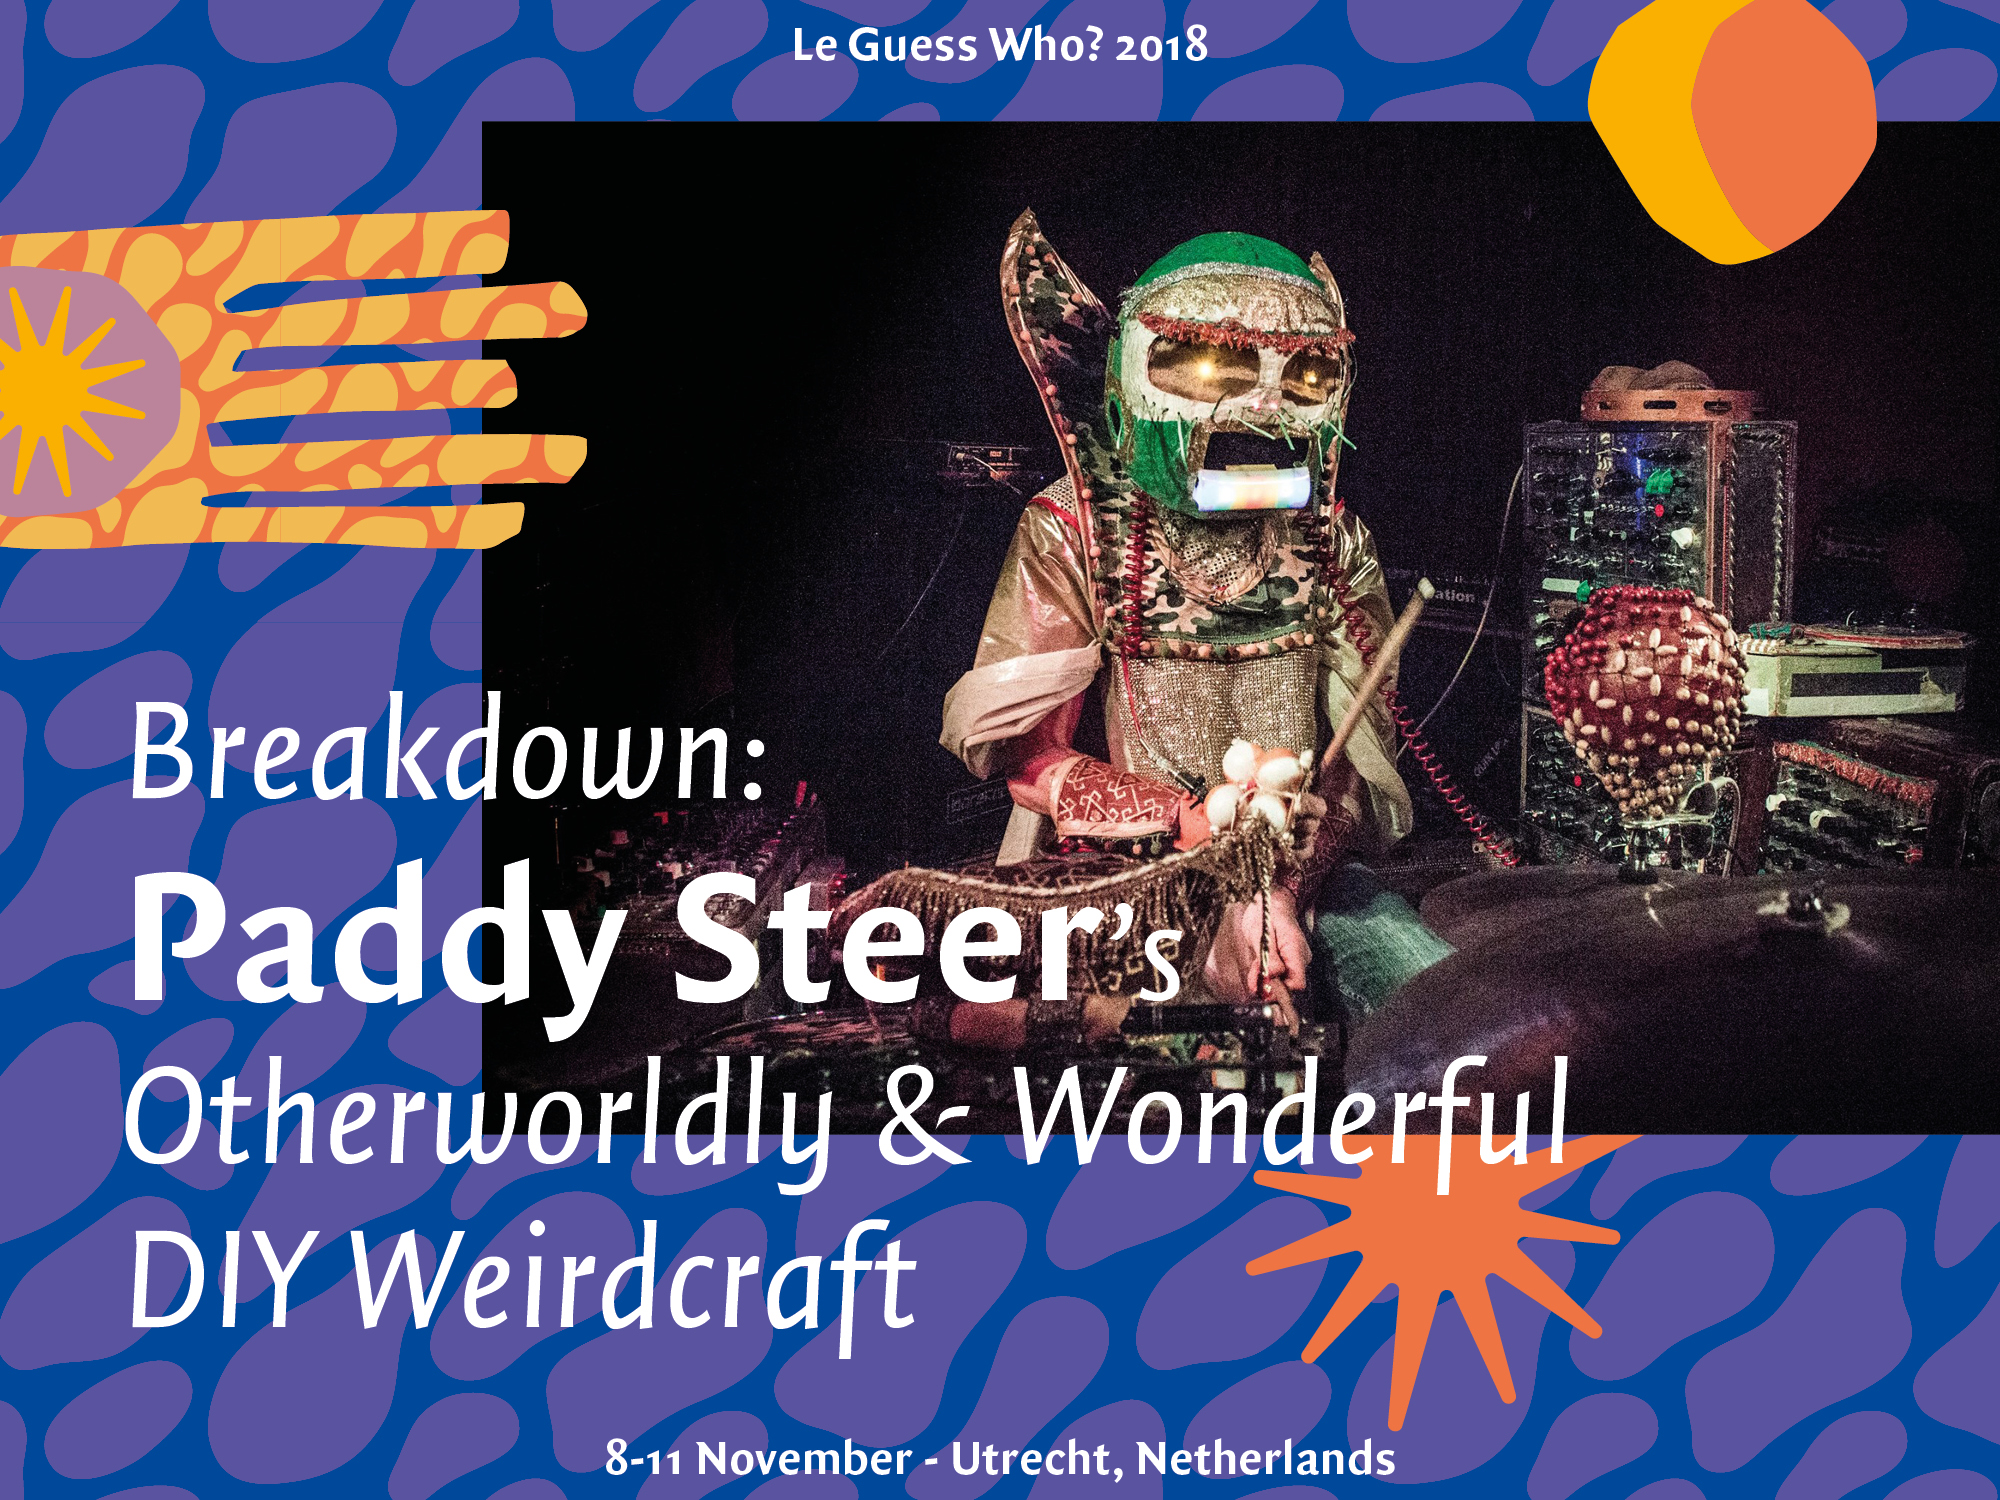 Breakdown: Paddy Steer's Otherworldly & Wonderful DIY Weirdcraft